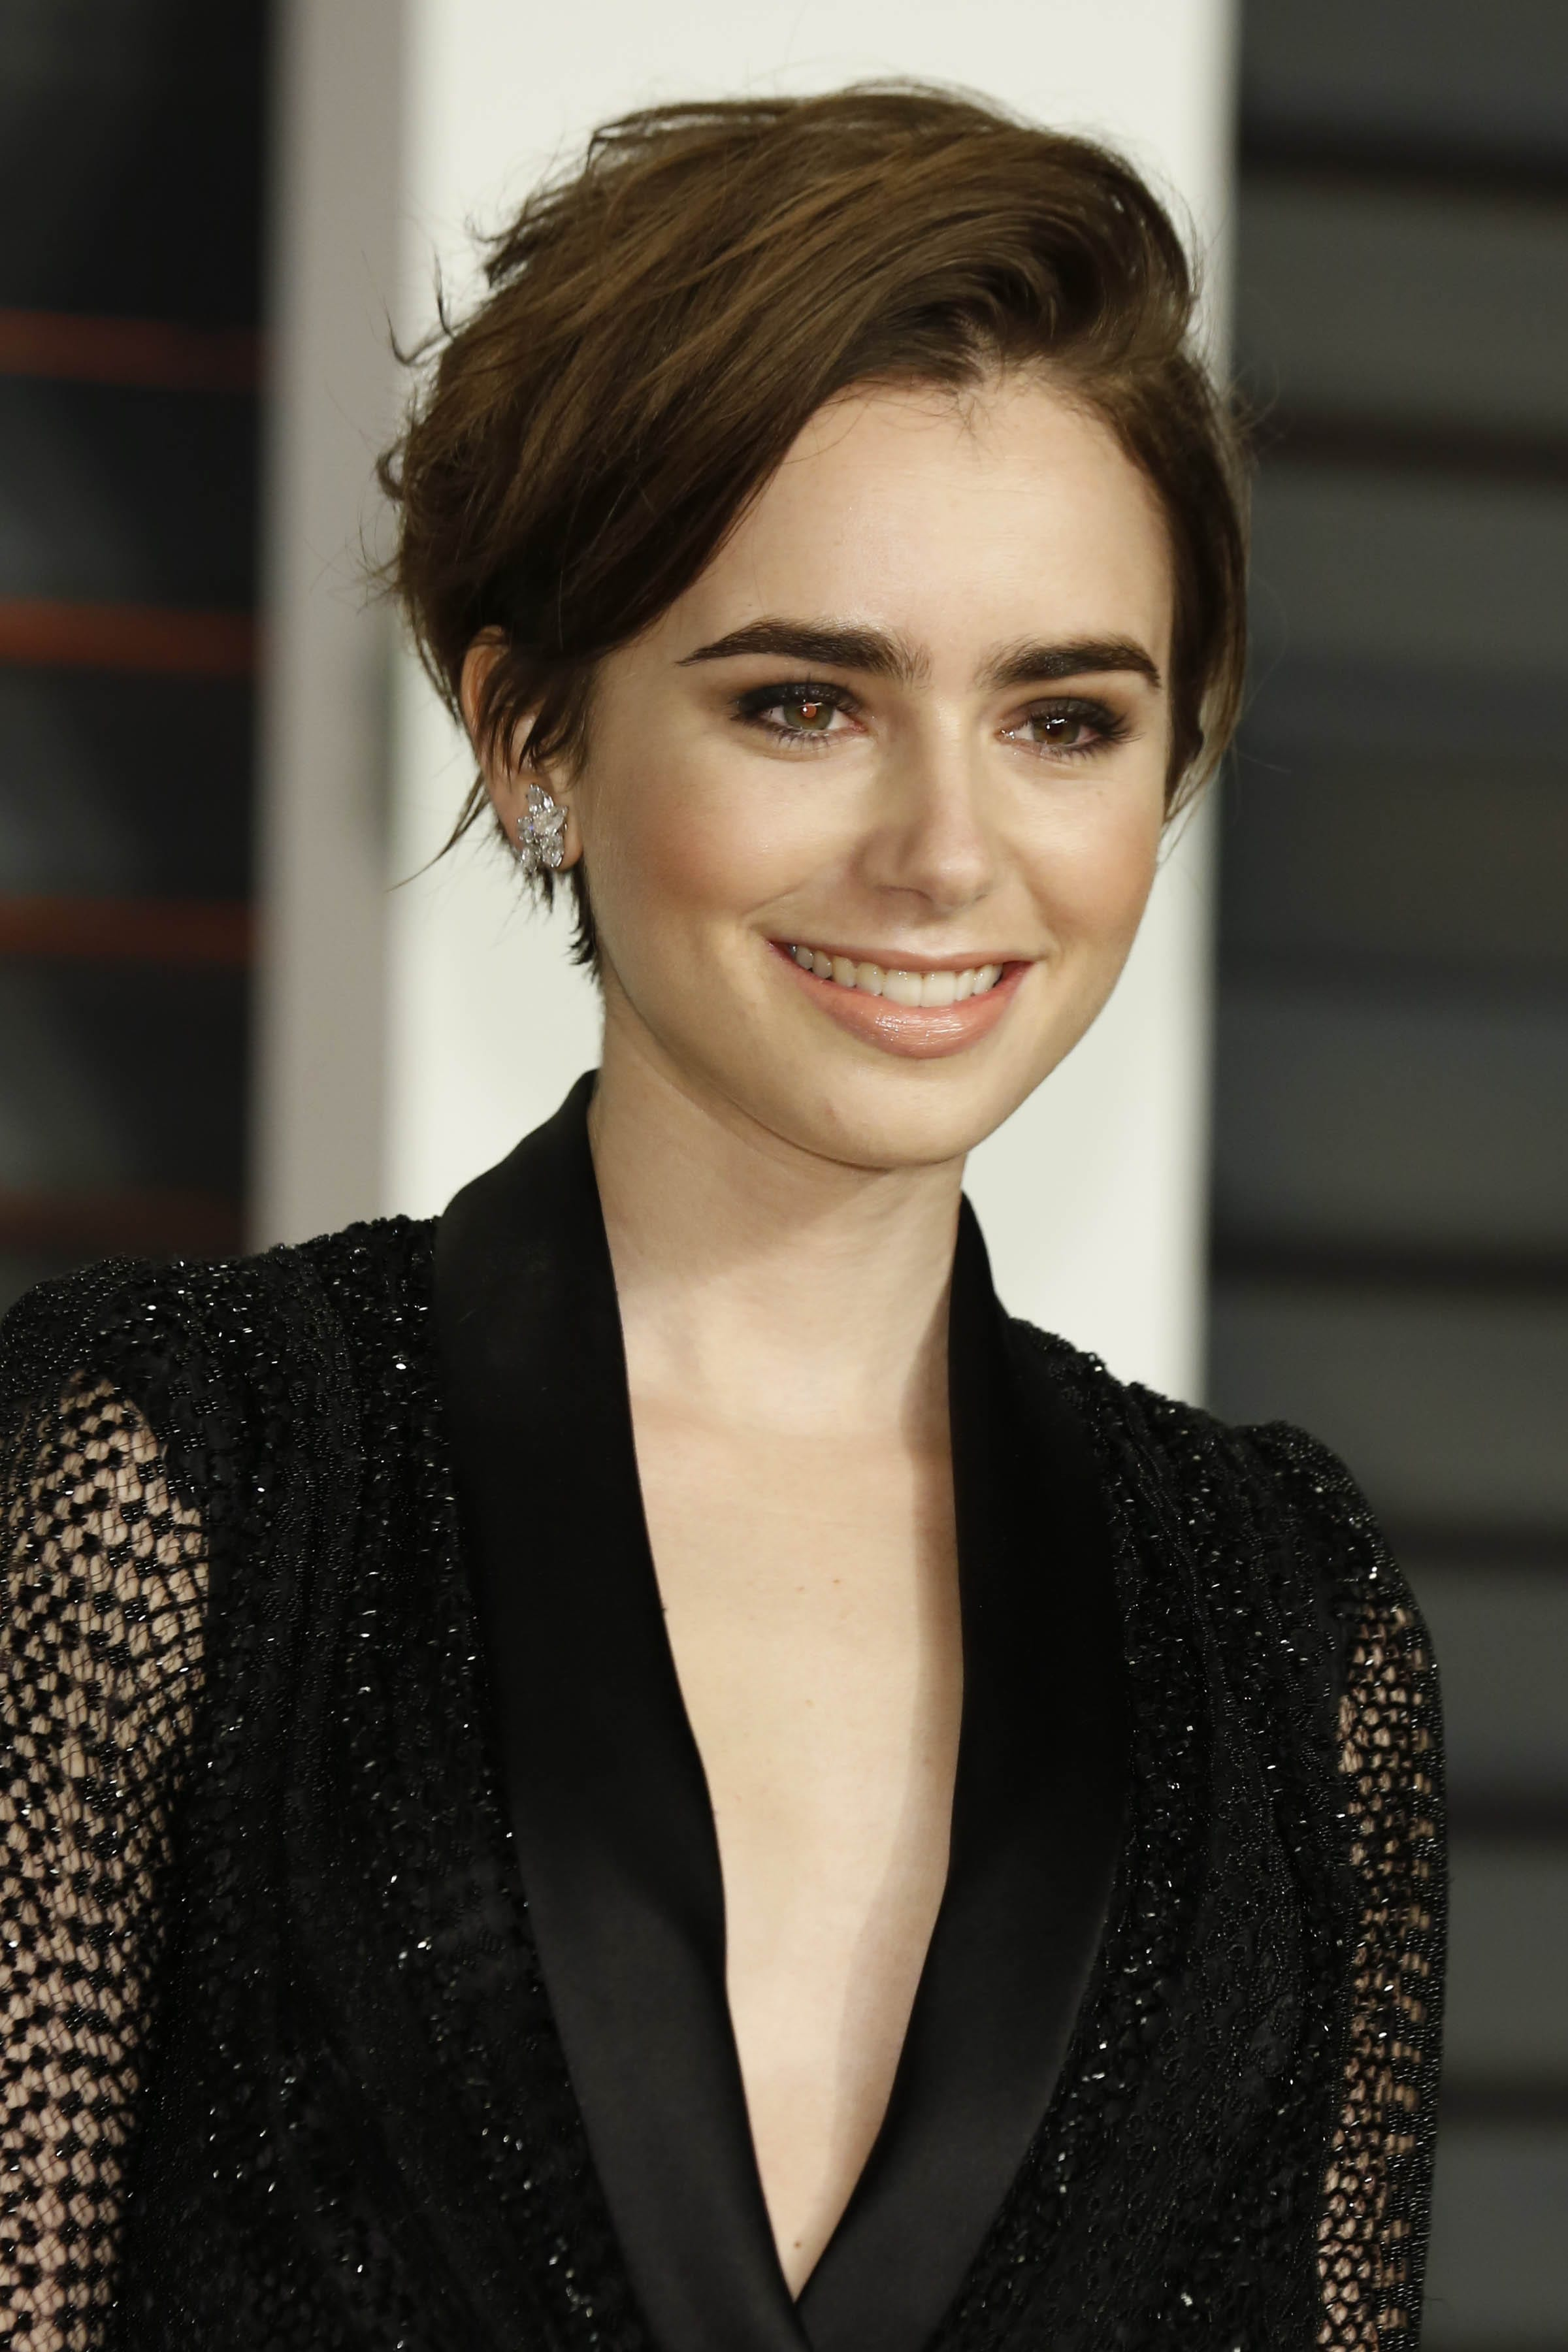 Lily Collins' Full-Bodied Pixie